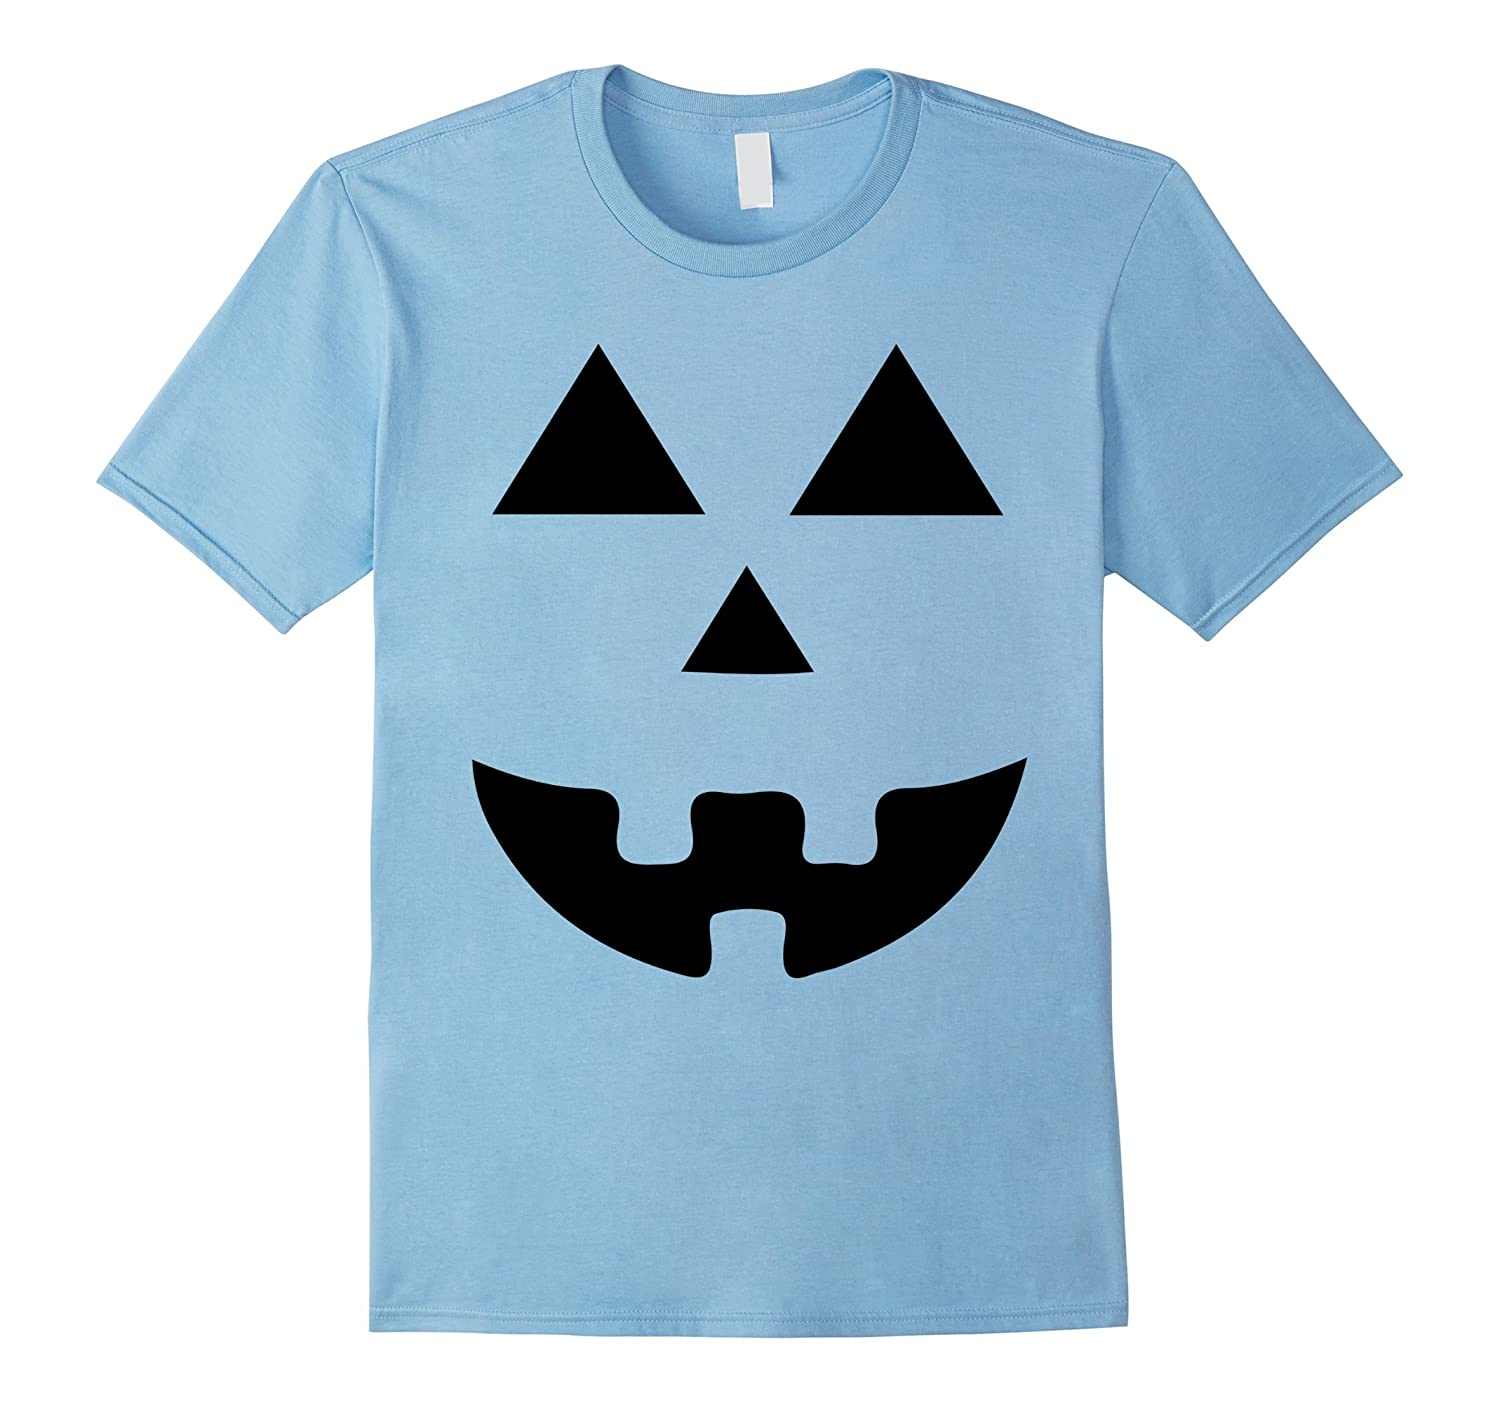 Halloween Pumpkin Face T-Shirt For Men Women Kids Toddlers-T-Shirt